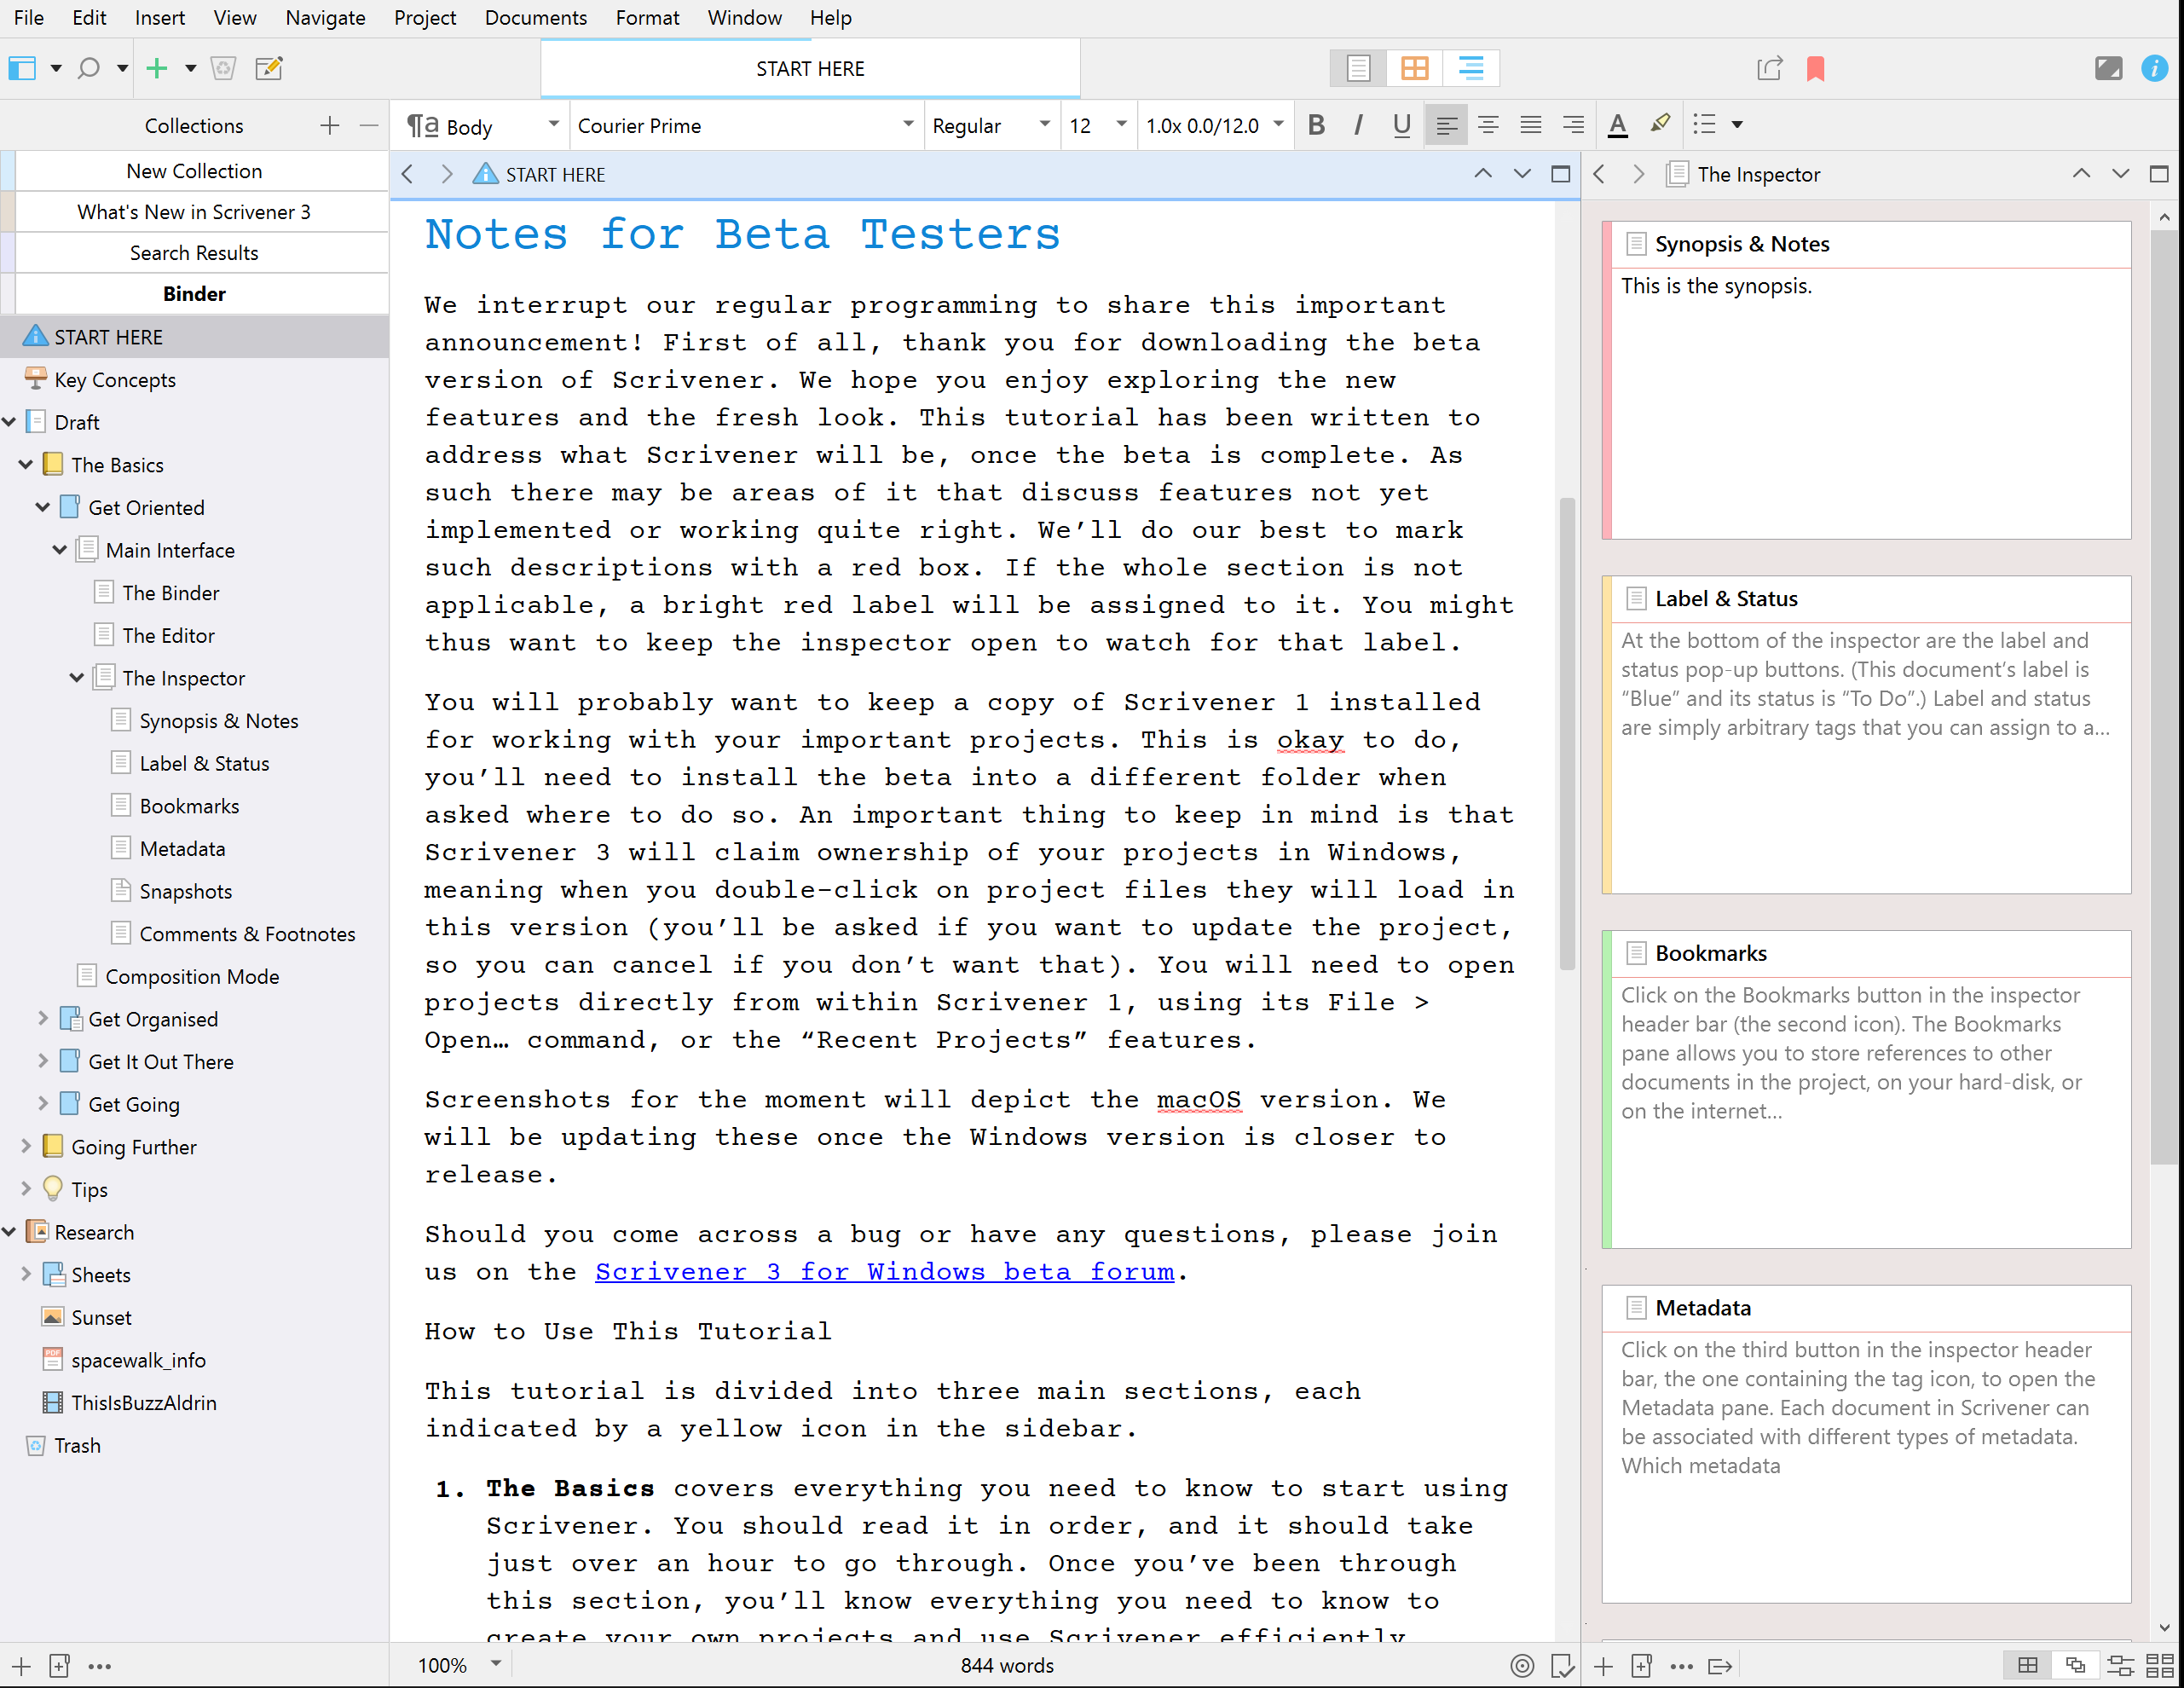 Scrivener 3 for Windows